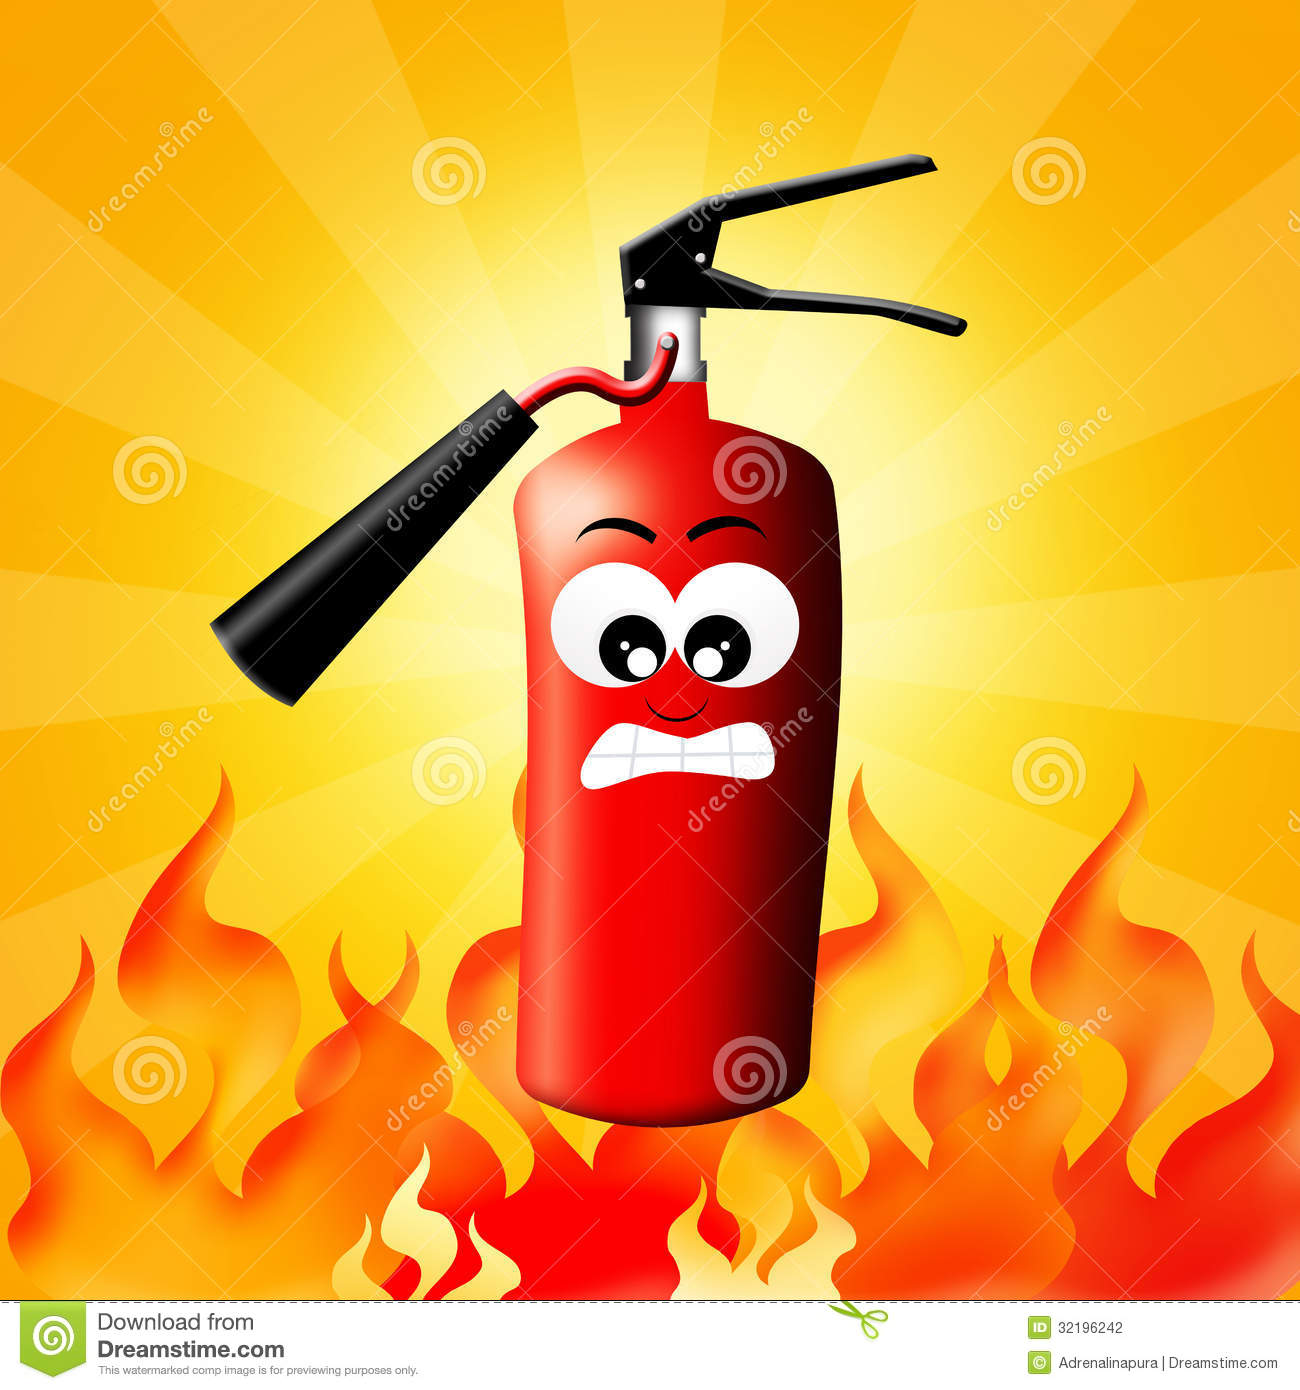 Illustration of fire extinguisher in the fire.